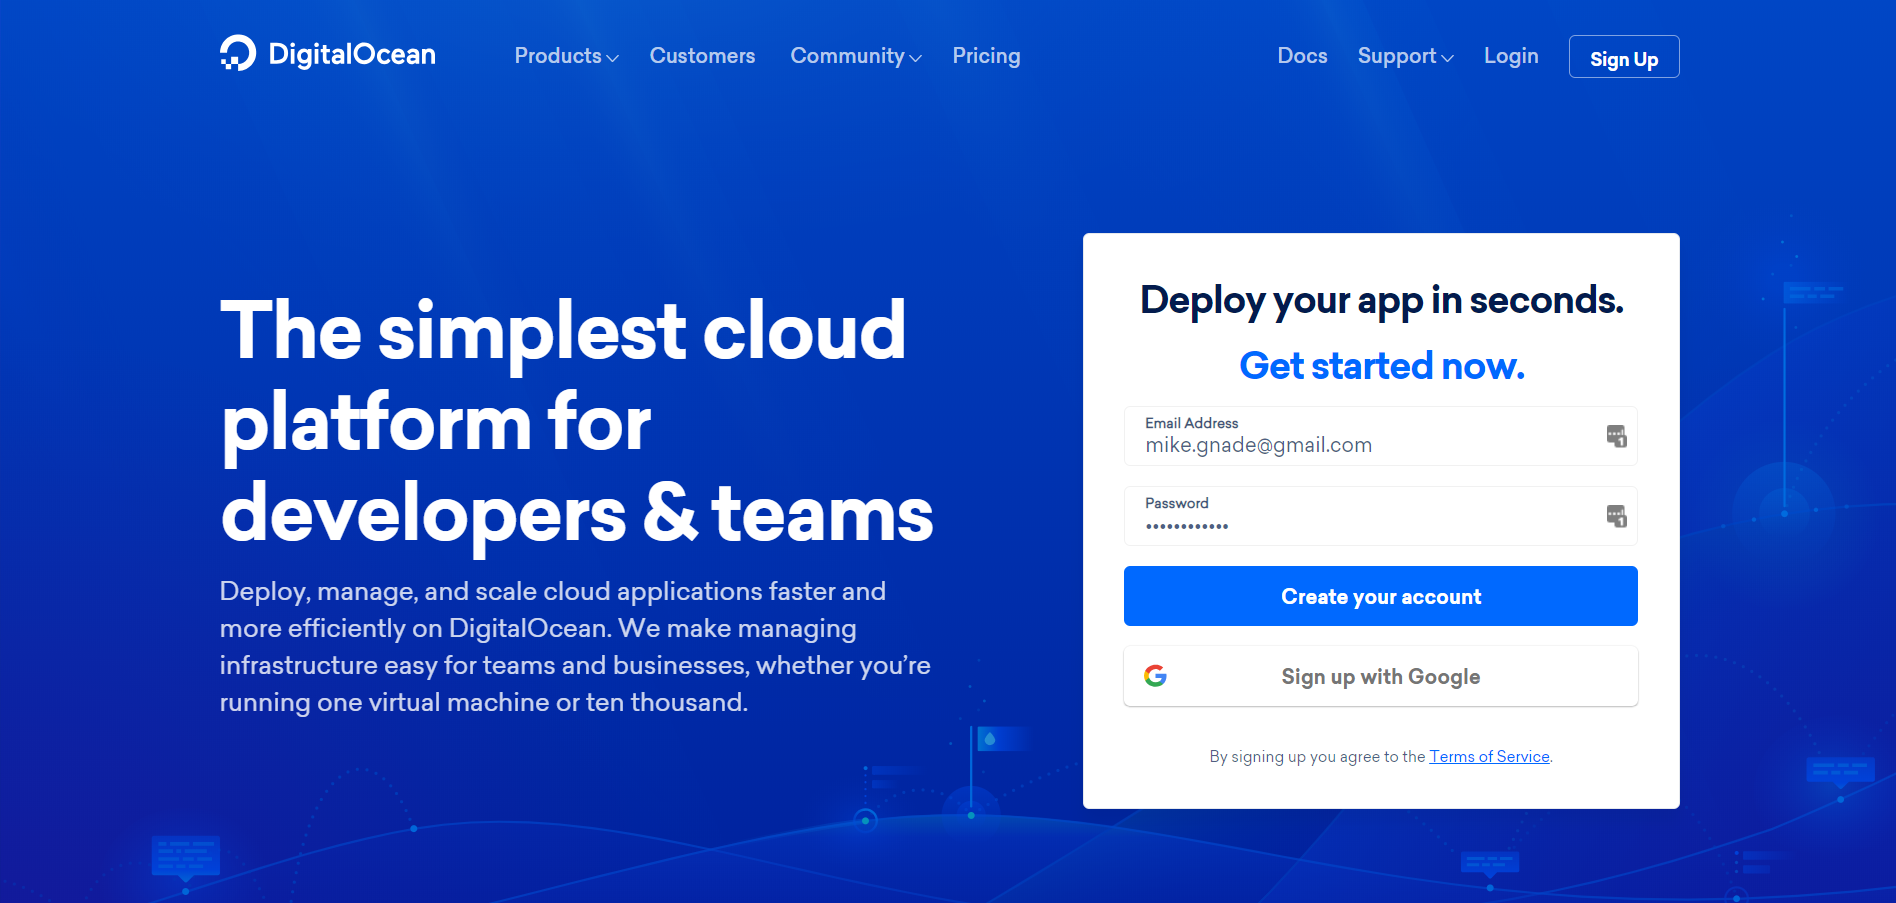 Digital Ocean website image